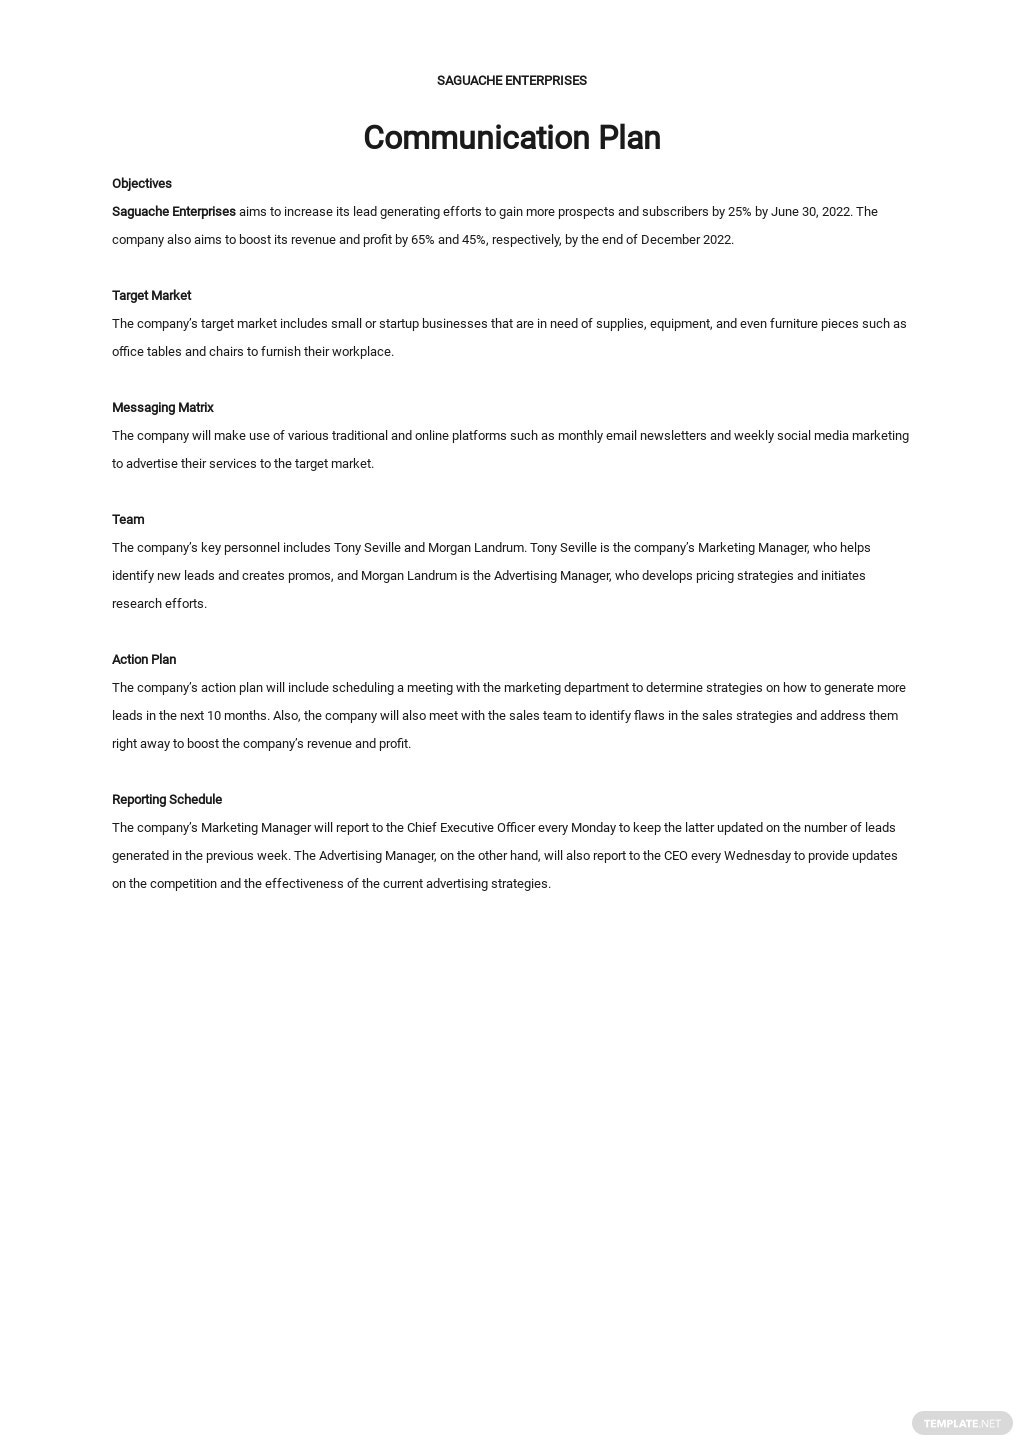 One Page Communication Plan Template